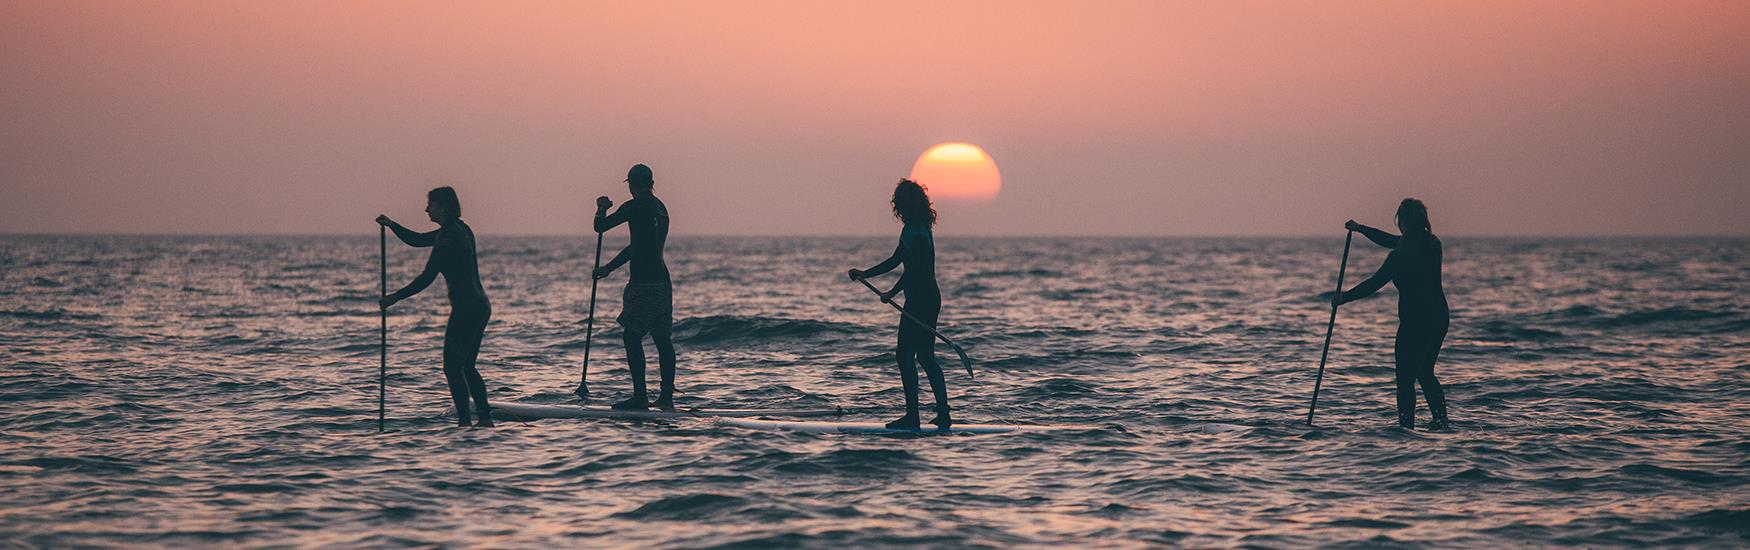 Paddle boarders at Sunset in Poole Harbour.